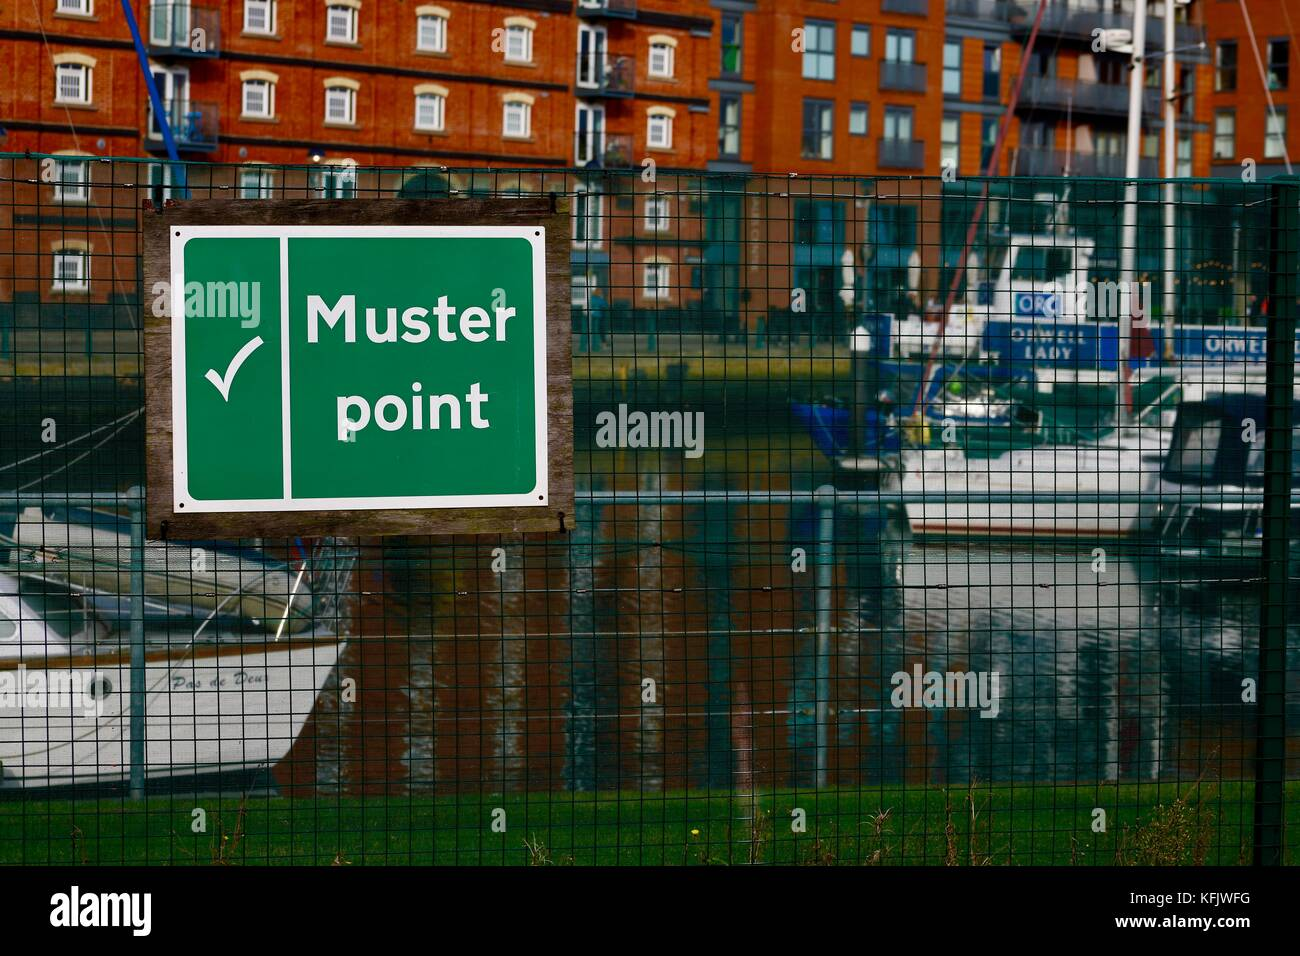 Green muster point sign at Ipswich marina on a bright autumn afternoon. - Stock Image